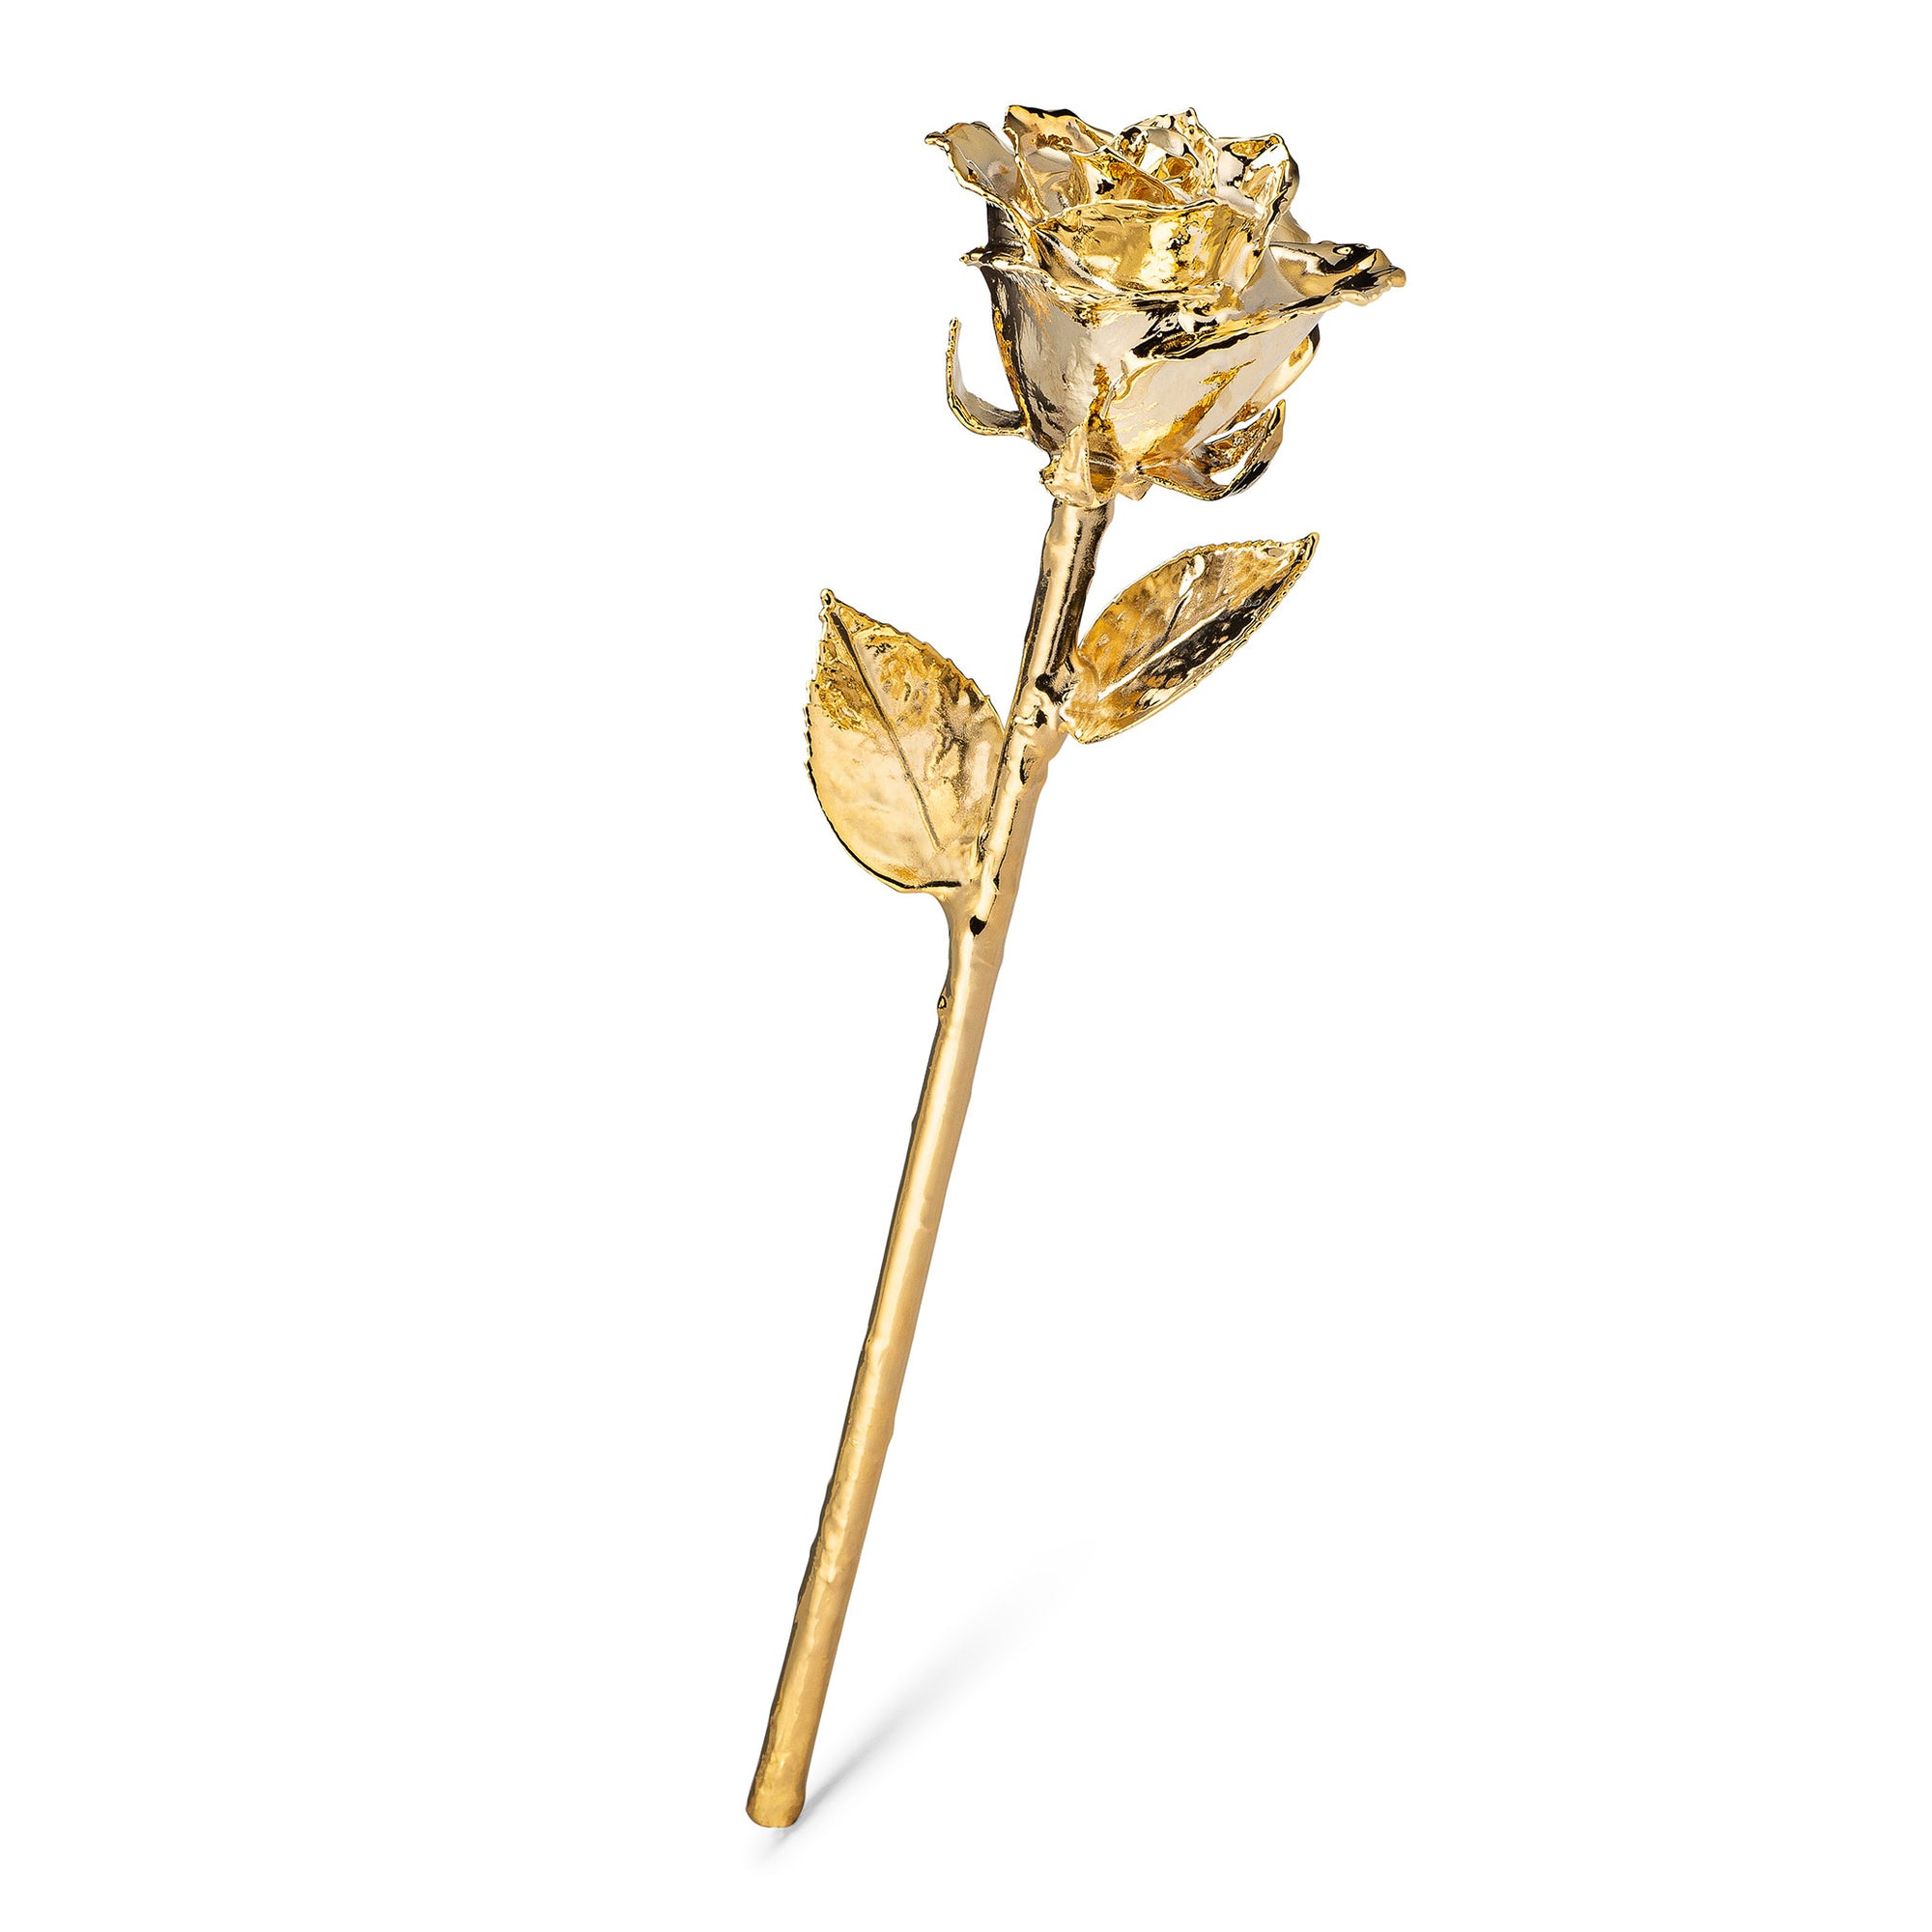 Real 24K Gold Forever Rose. Rose is fully dipped in gold. View shows the rose petals, sepals, stem, and leaves covered in 24 karat gold. The entire stem is shown.